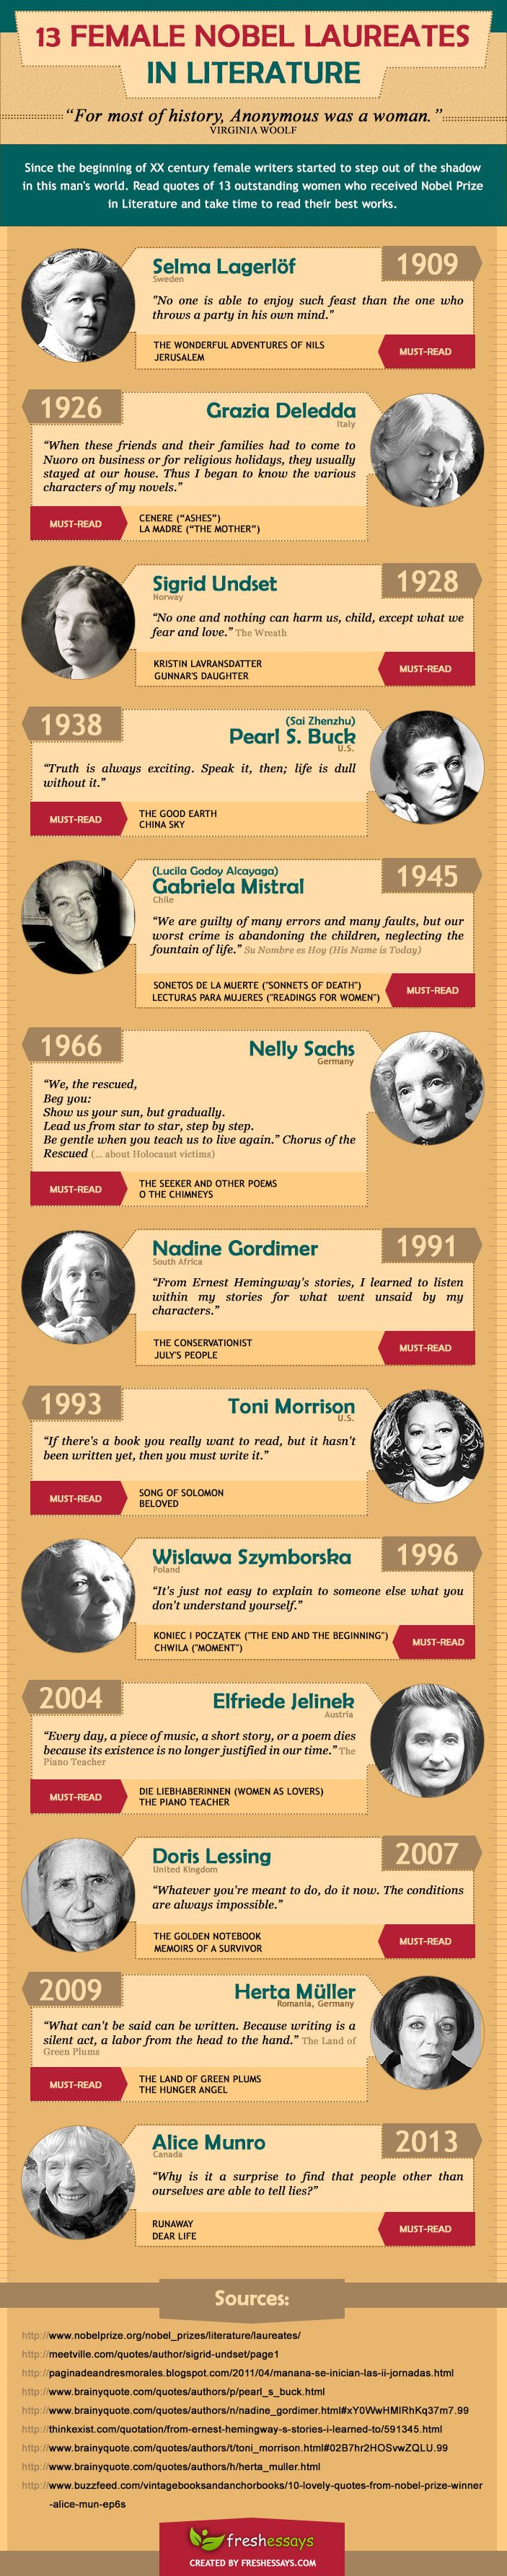 13 Female Nobel Laureates In Literature #infographic #Literature #History